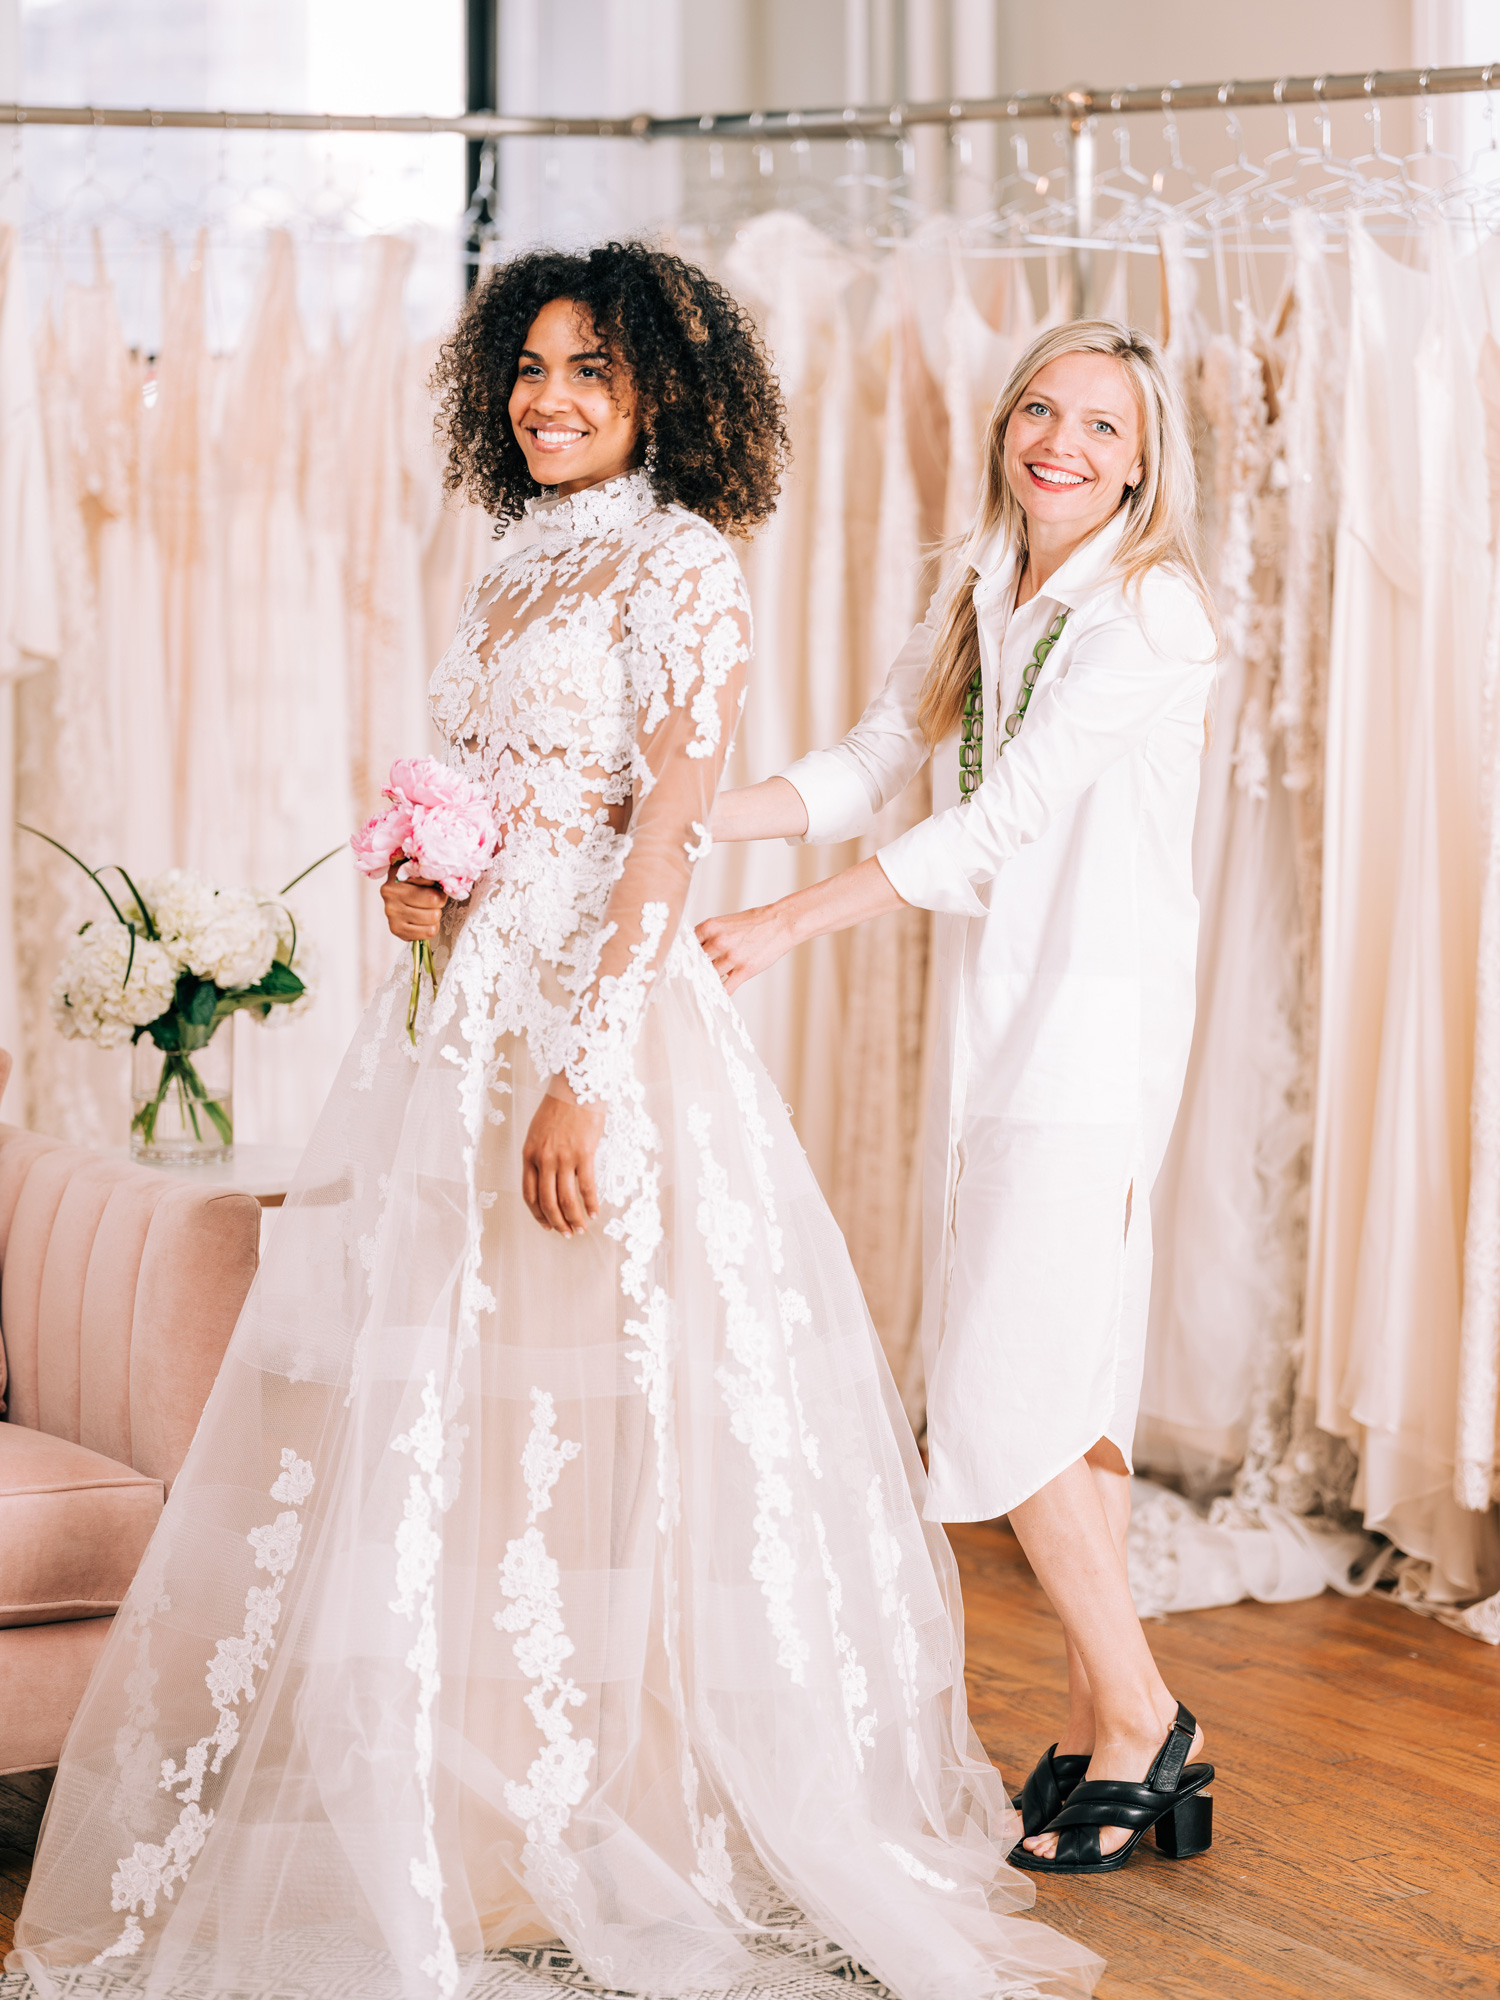 new york wedding photographer reem acra - 7 TIPS FOR FINDING YOUR WEDDING DRESS